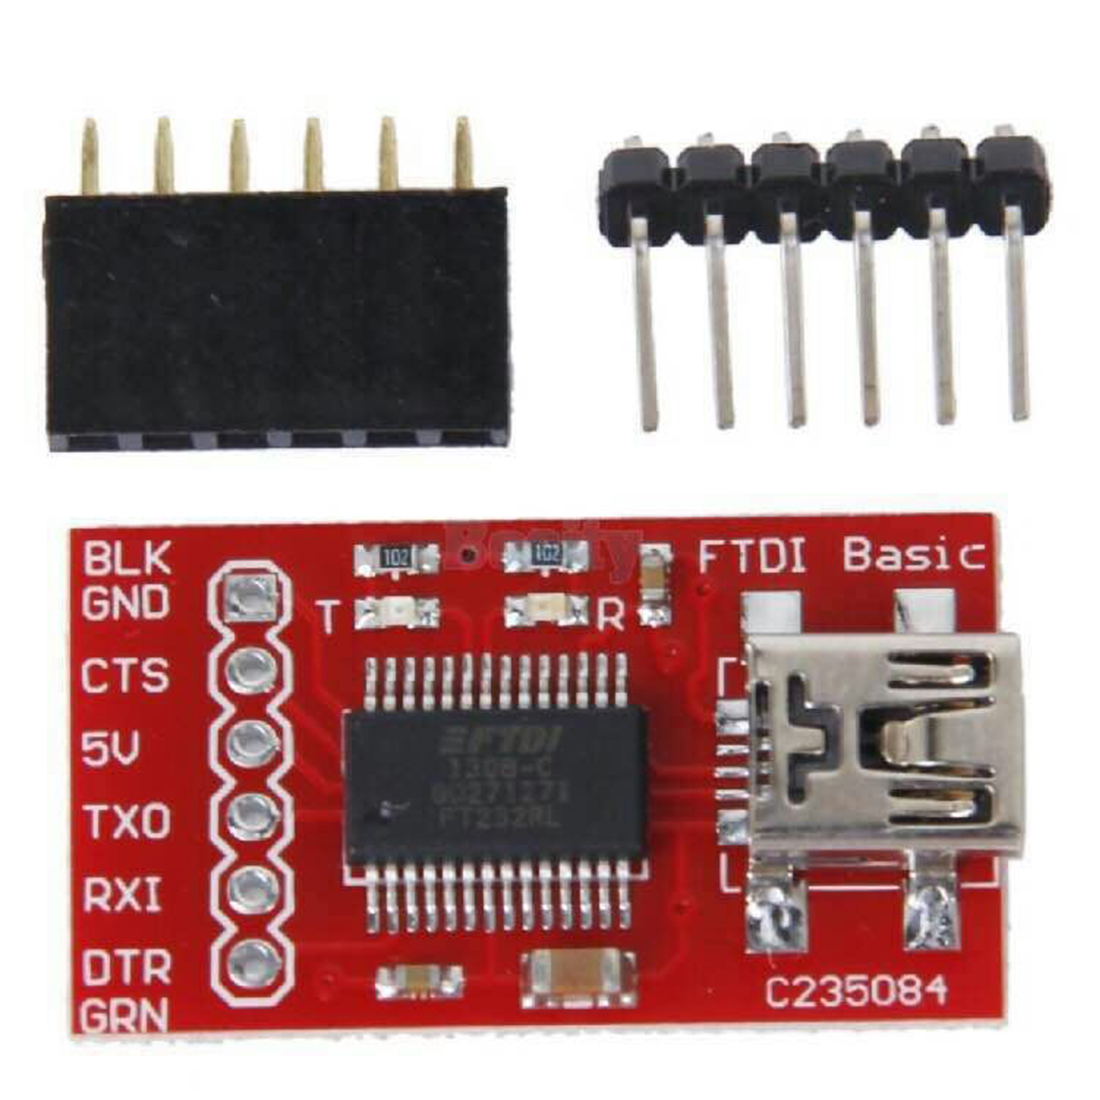 F3 V4 Flight Control Board AIO 25mW 200mW 600mW Switchable Transmitter OSD BEC PDB Current Sensor easy assemble anet a2 3d printer kit high precision reprap prusa i3 diy 3d printing machine hotbed filament sd card lcd